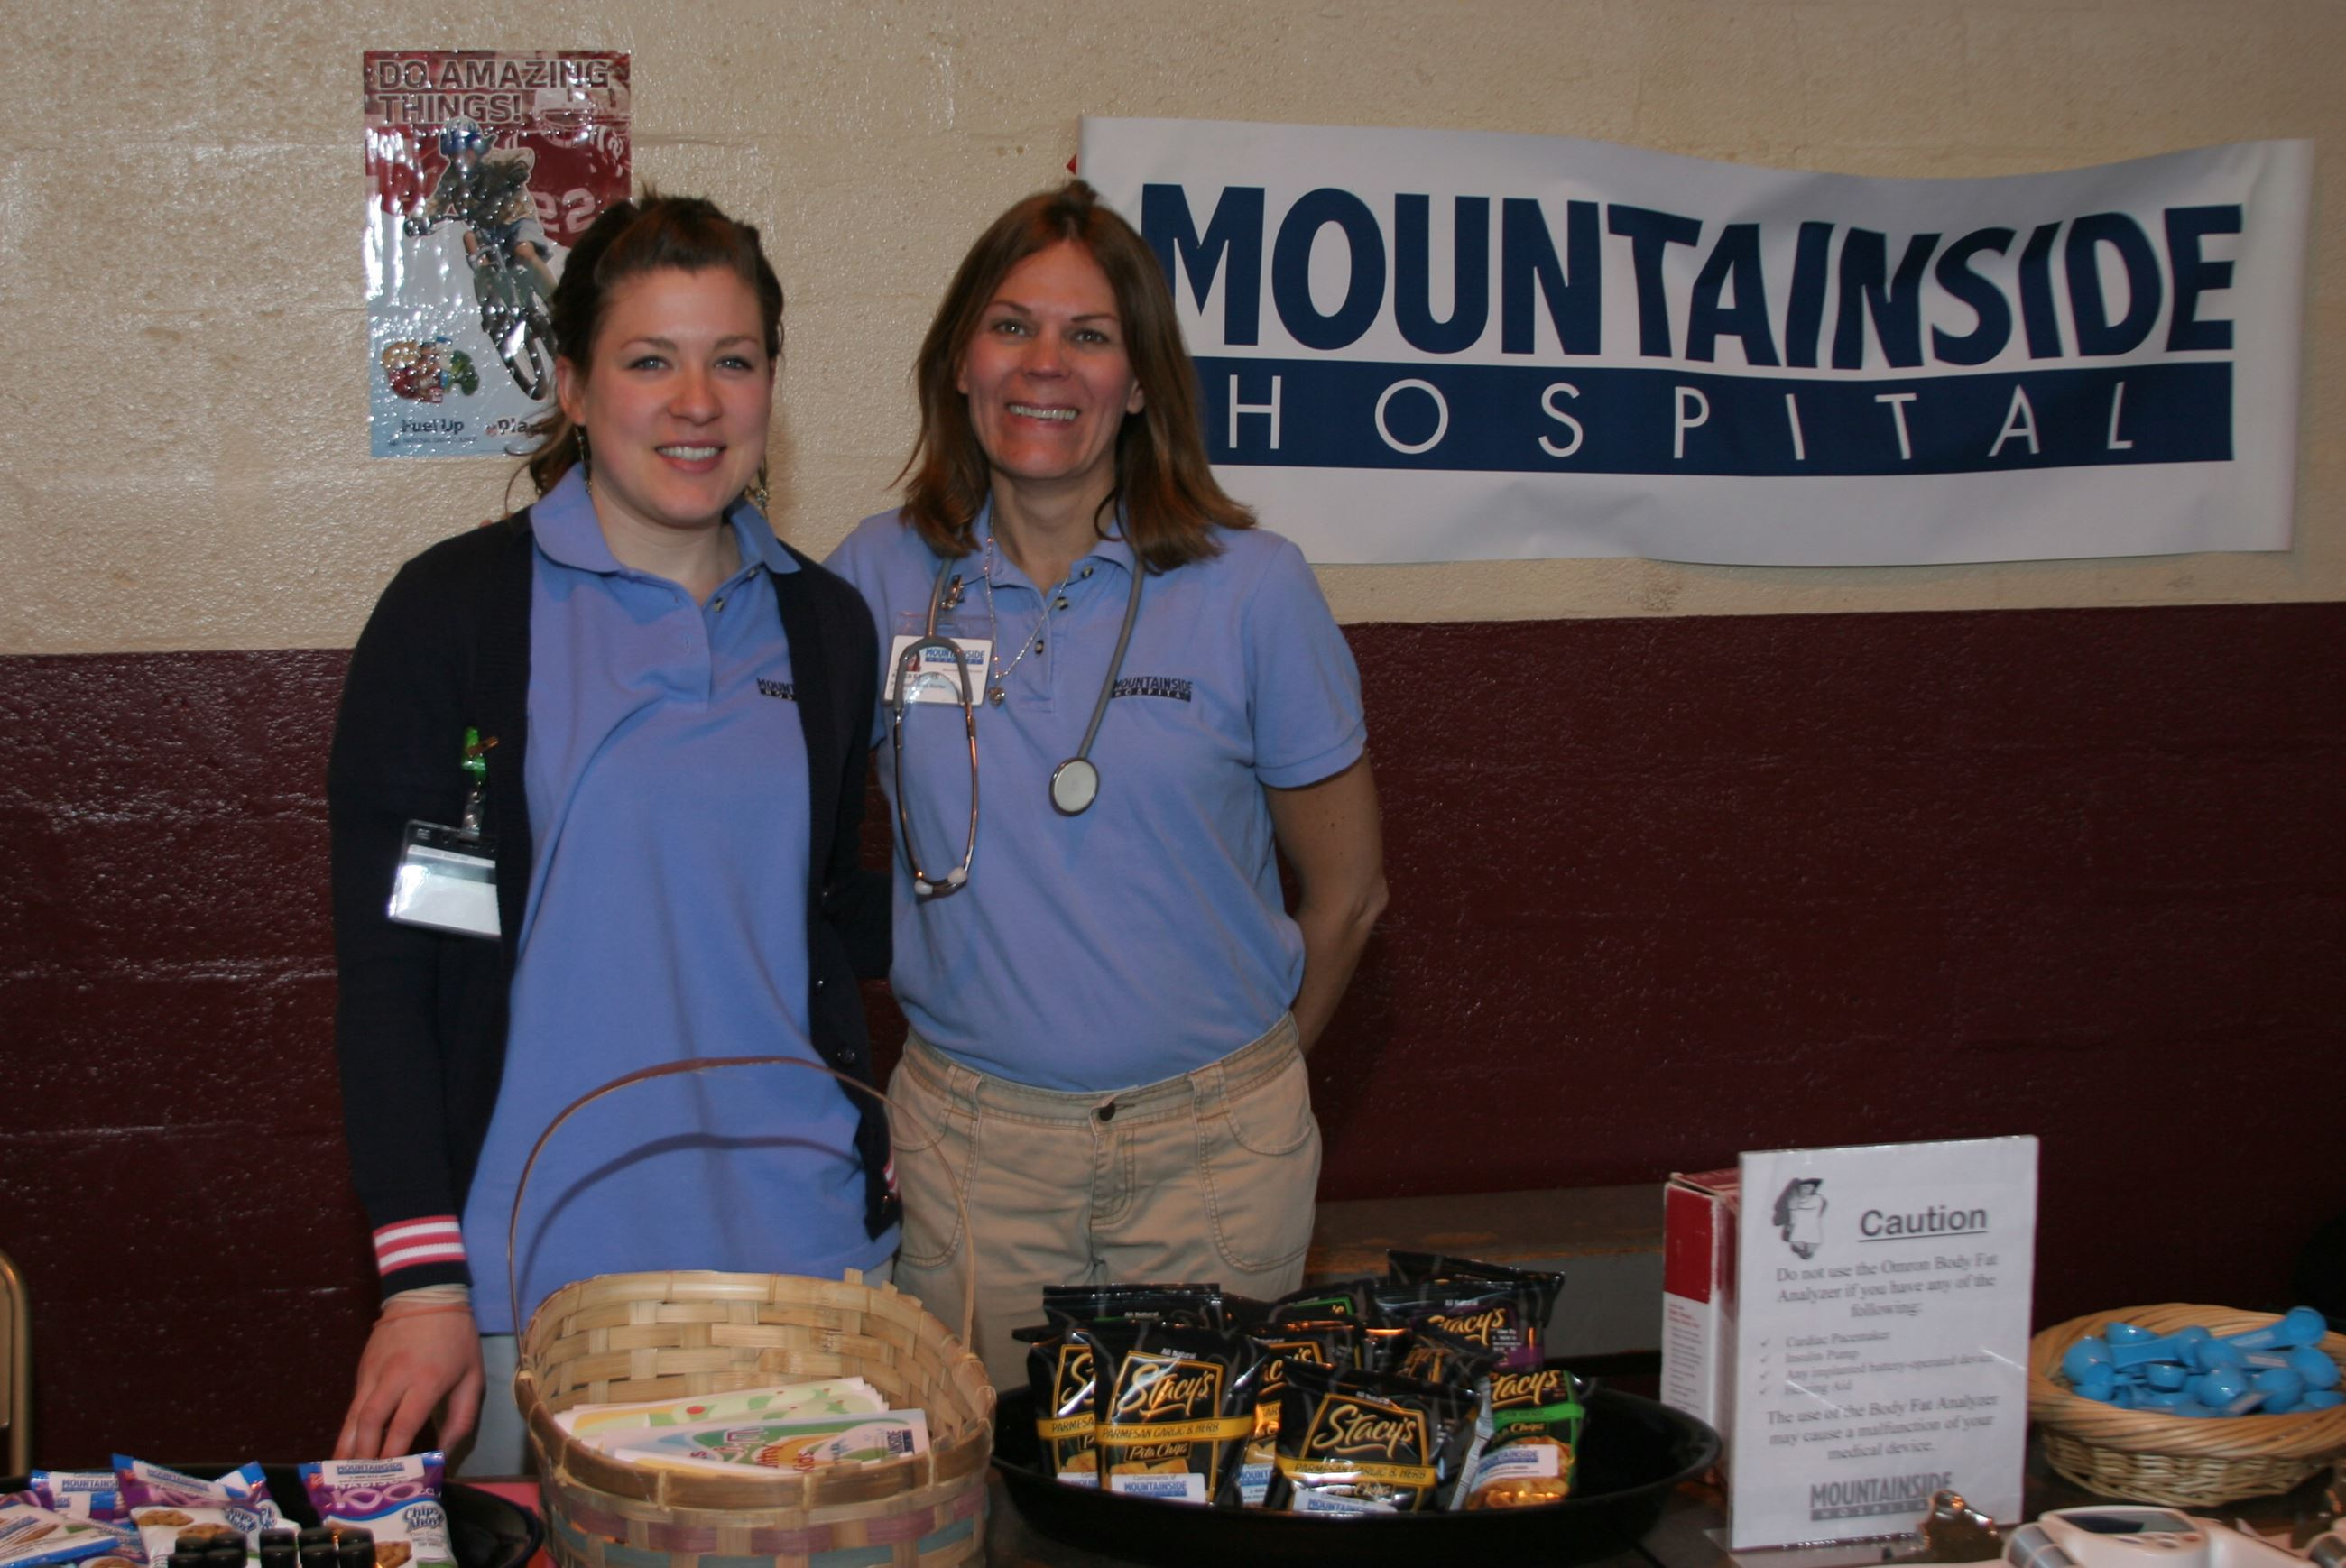 Mountainside Hospital table at Safety Fair